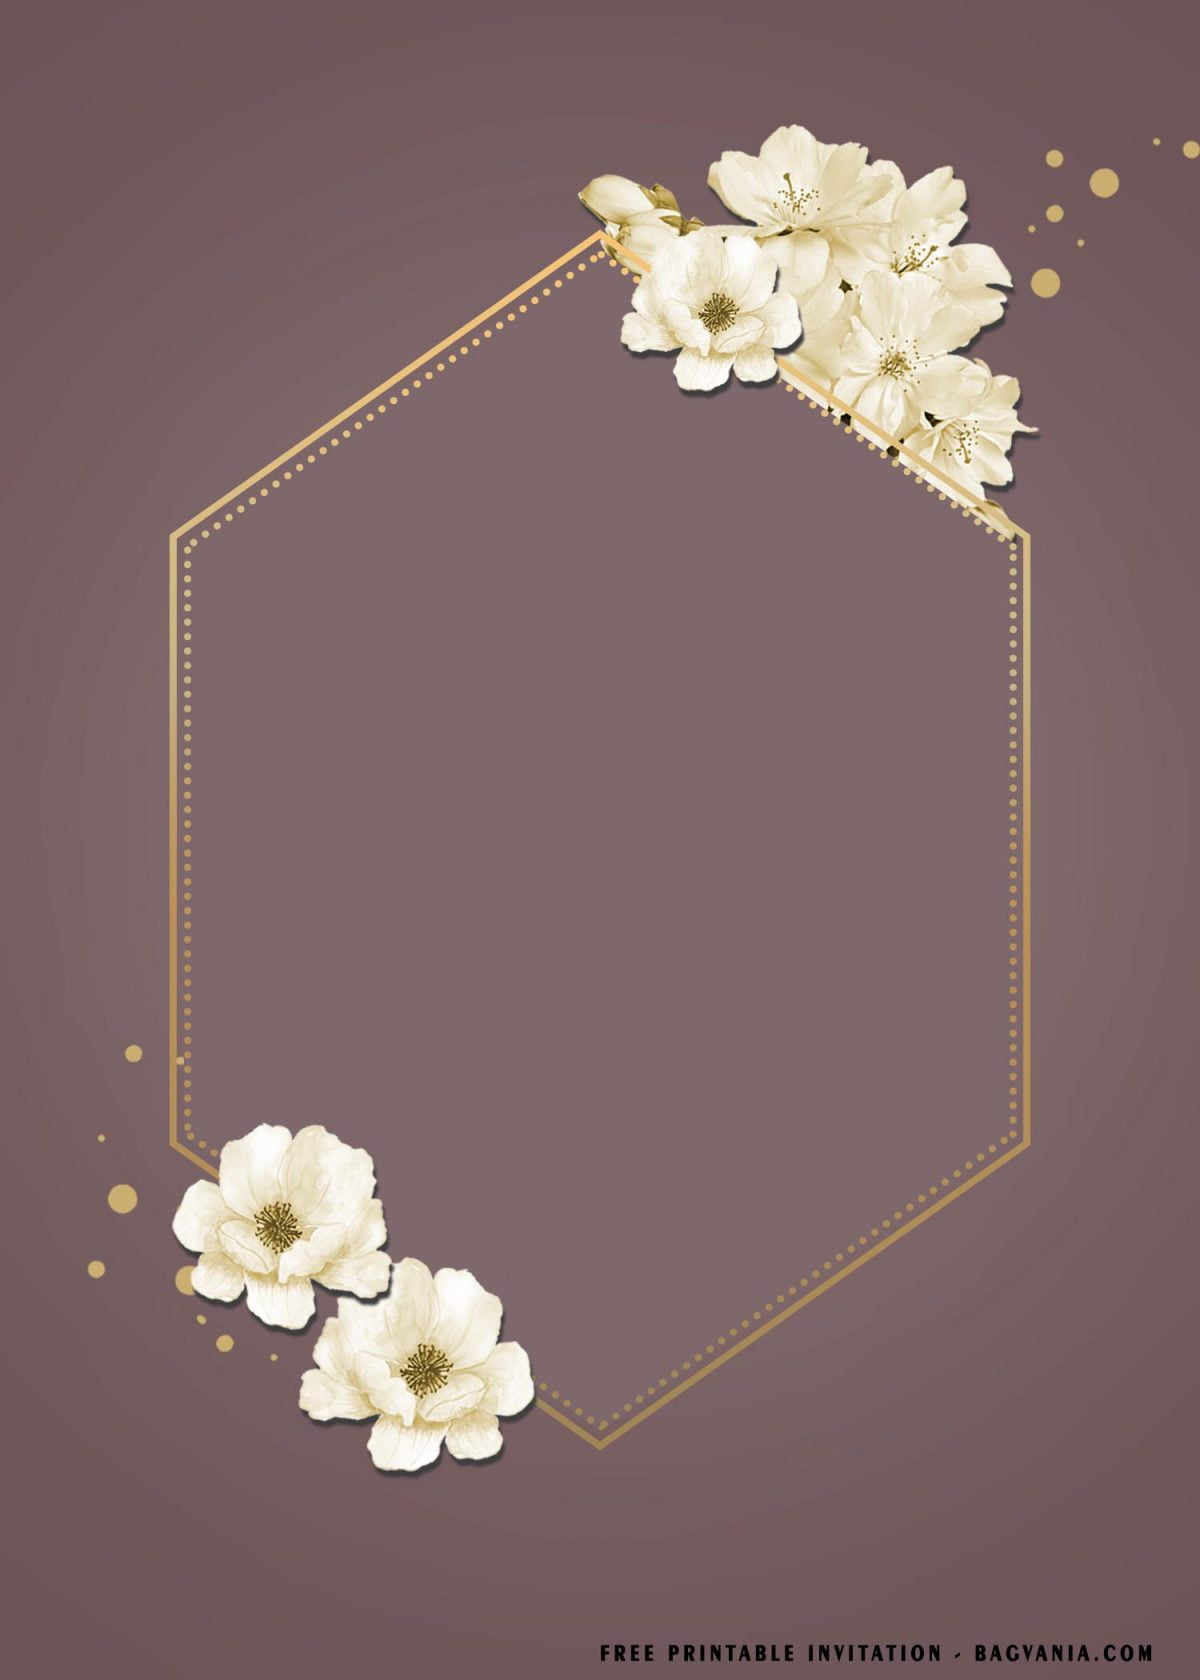 Free Printable Cherry Blossom Baby Shower Invitation Templates With Gold Text Frame